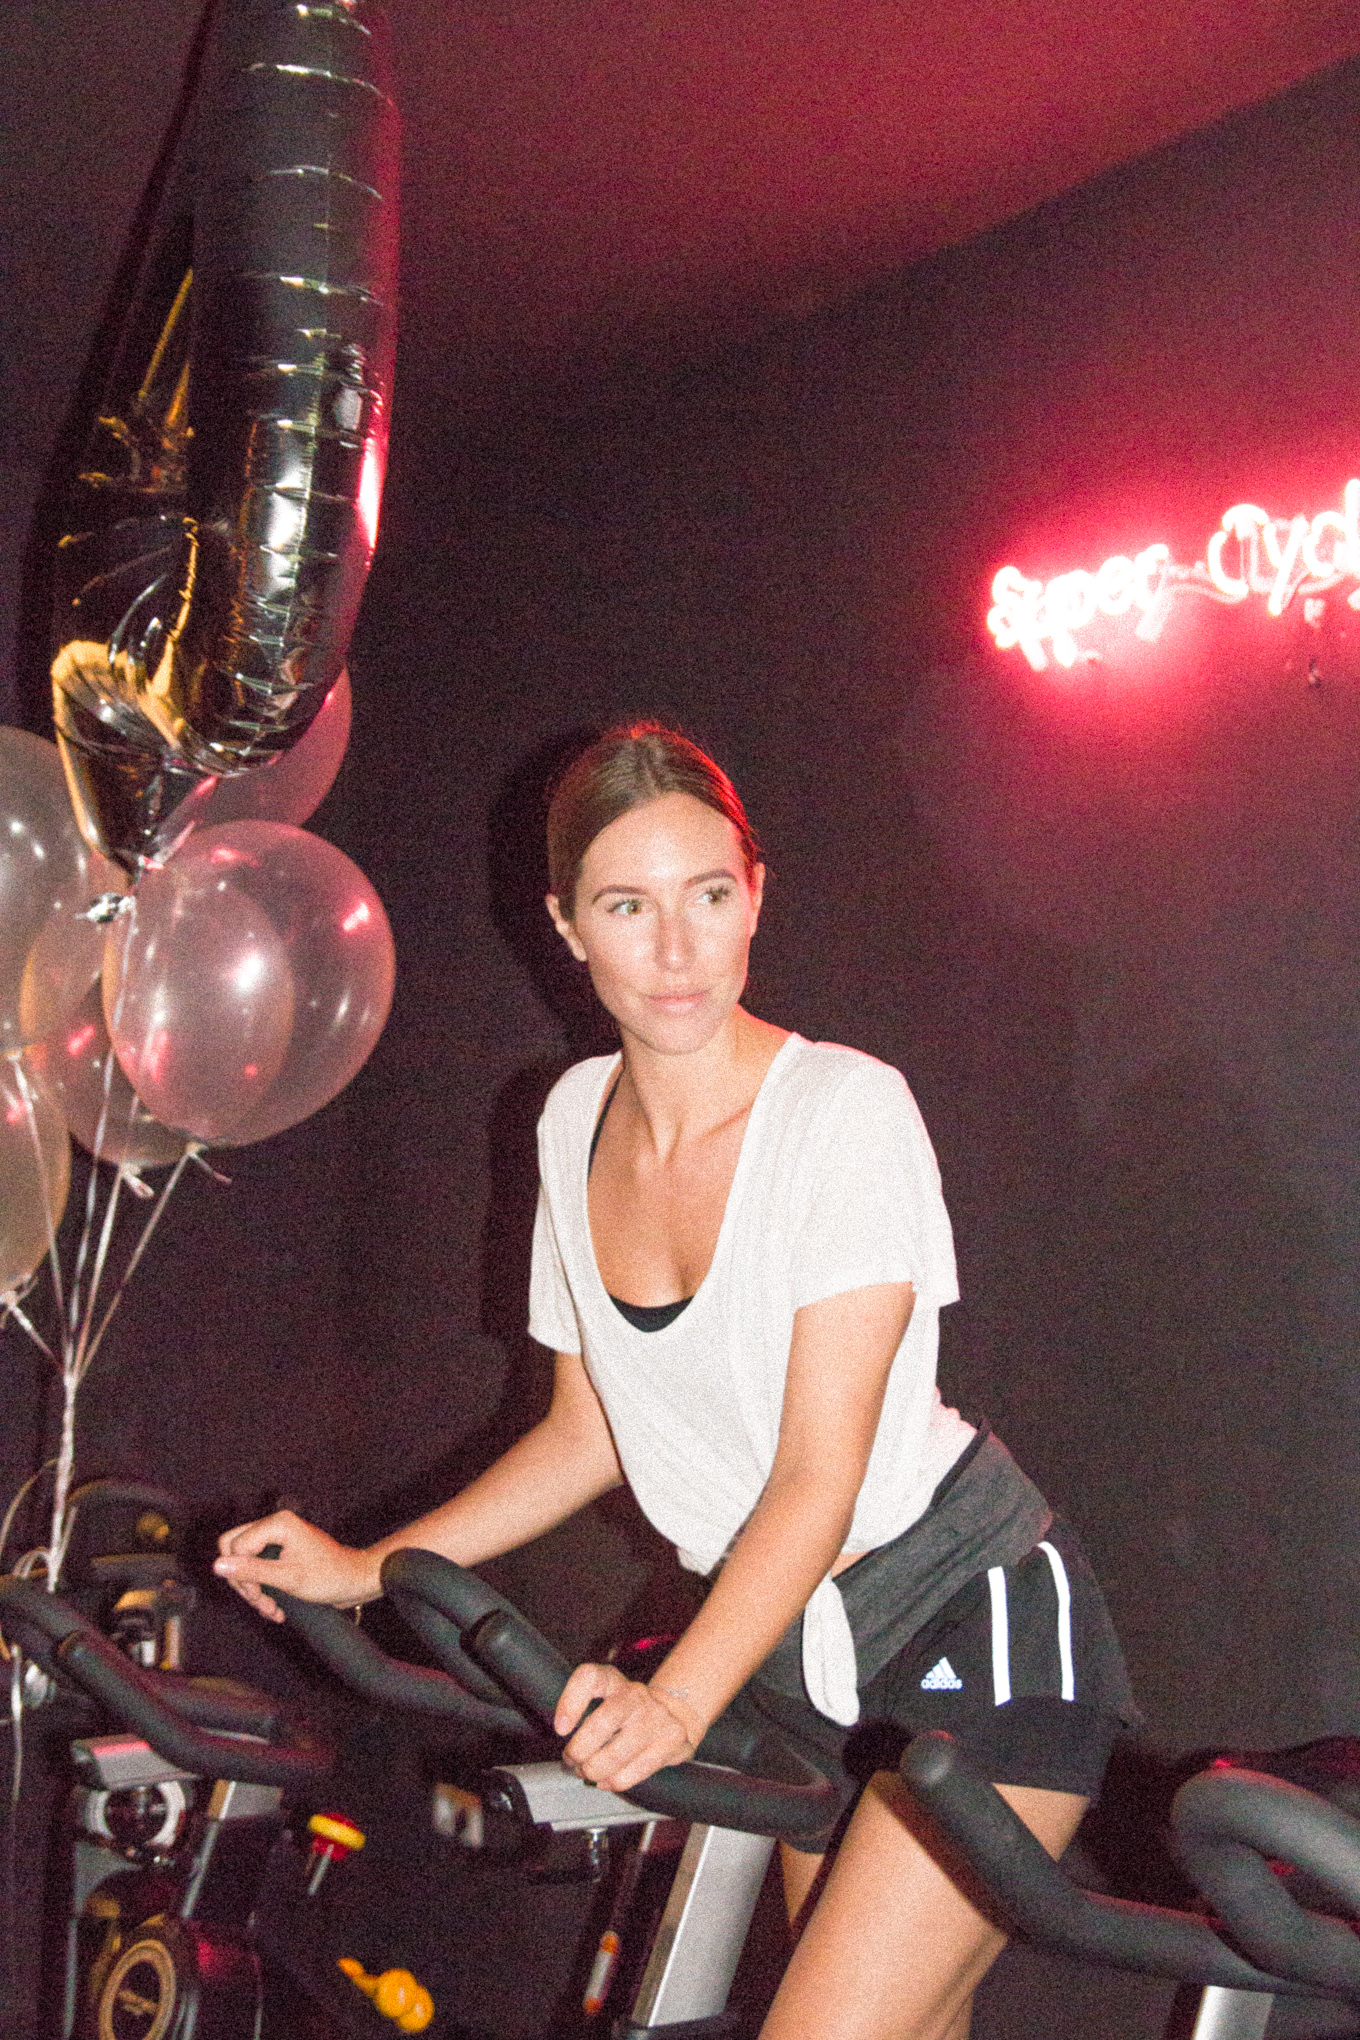 4-Jahre-The-Daily-Dose-Supercycle-Vienna-Giveaway-31